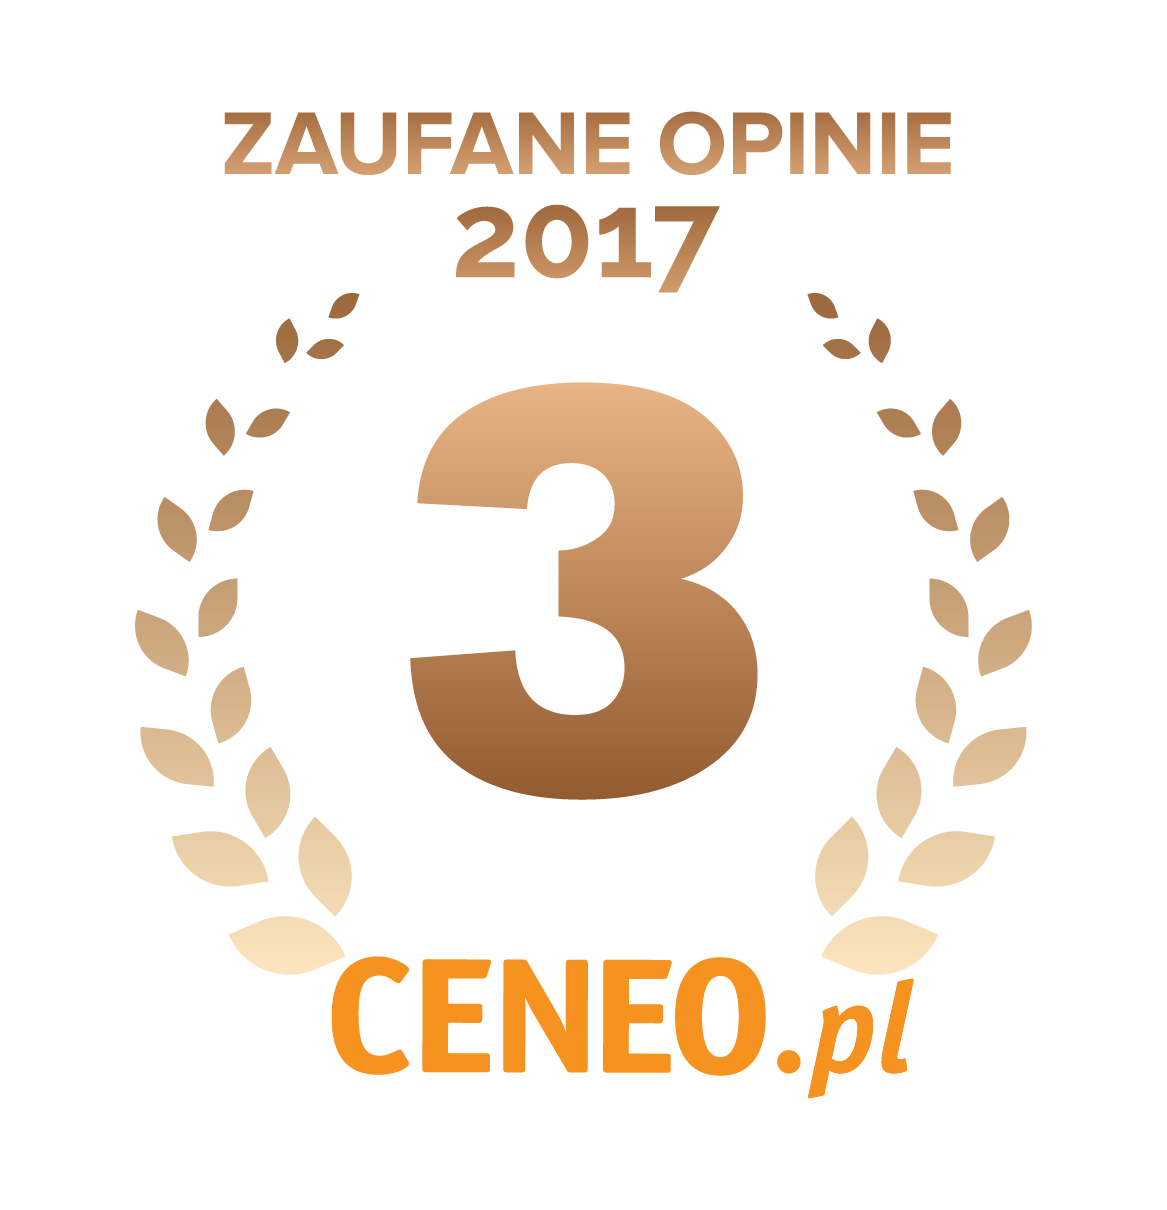 Zaufane opinie 2017 Ceneo.pl